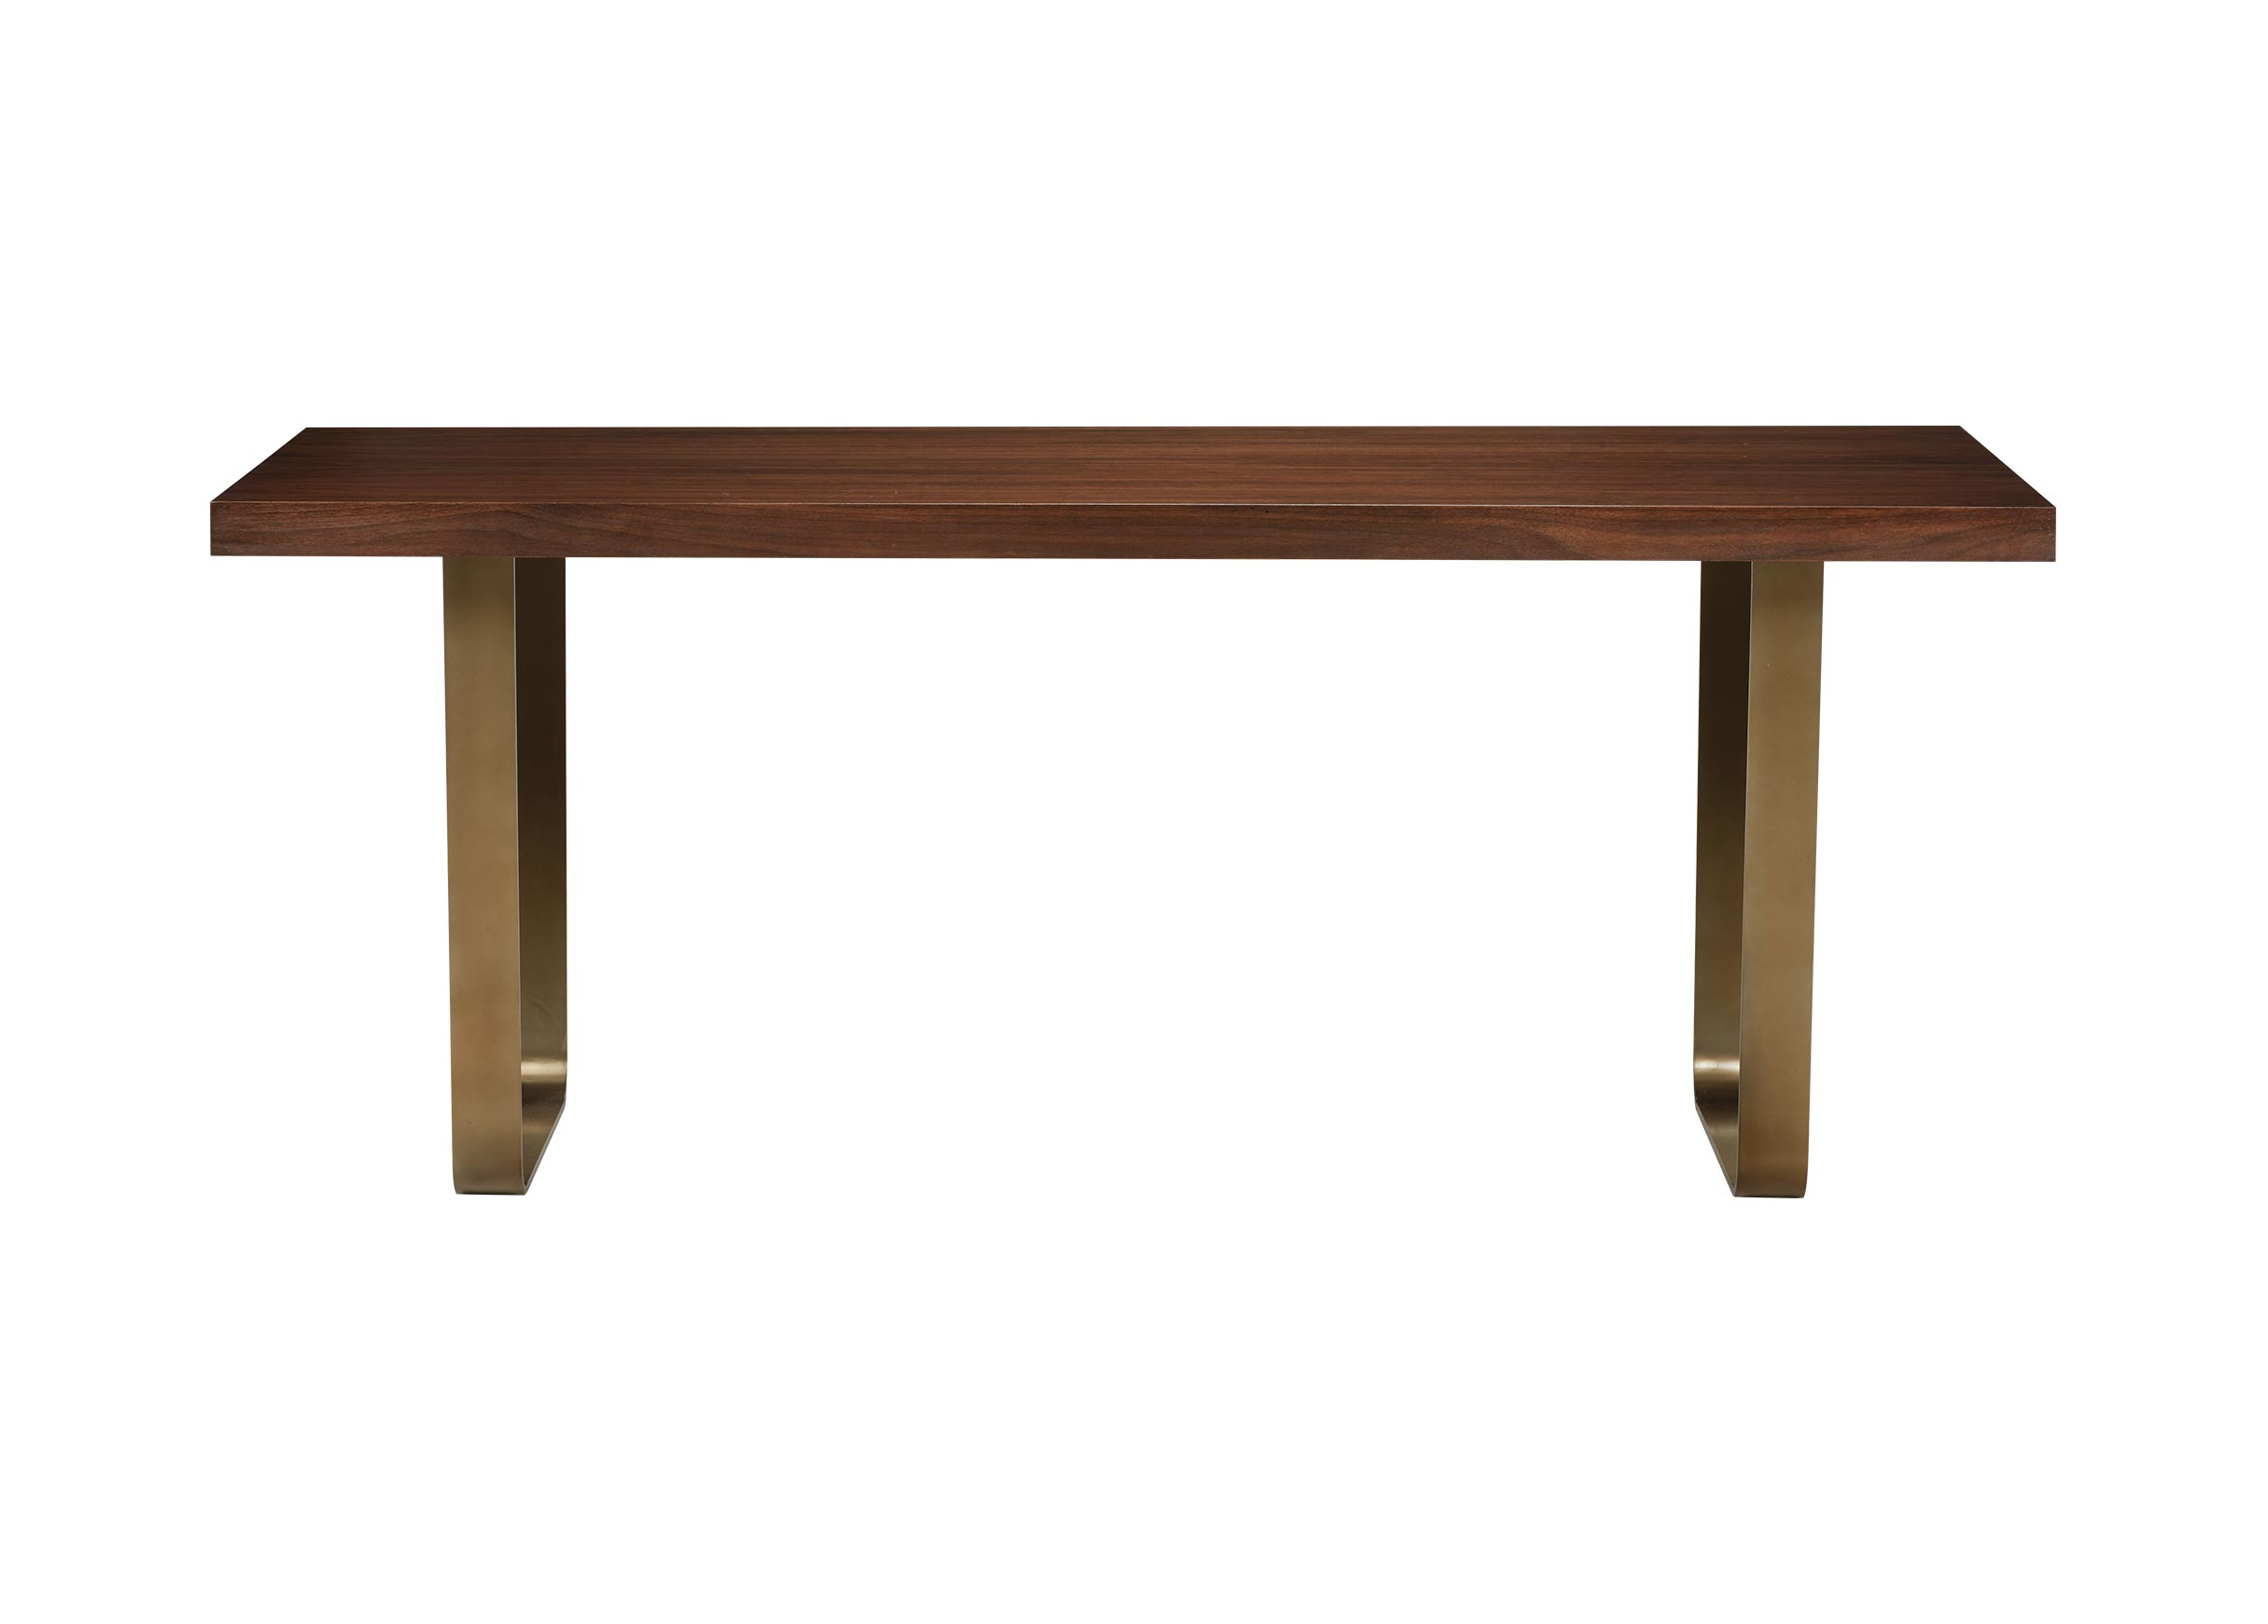 Most Recently Released Mid Century Rectangular Top Dining Tables With Wood Legs For Hoyt Wood And Metal Midcentury Modern Dining Table (View 22 of 30)